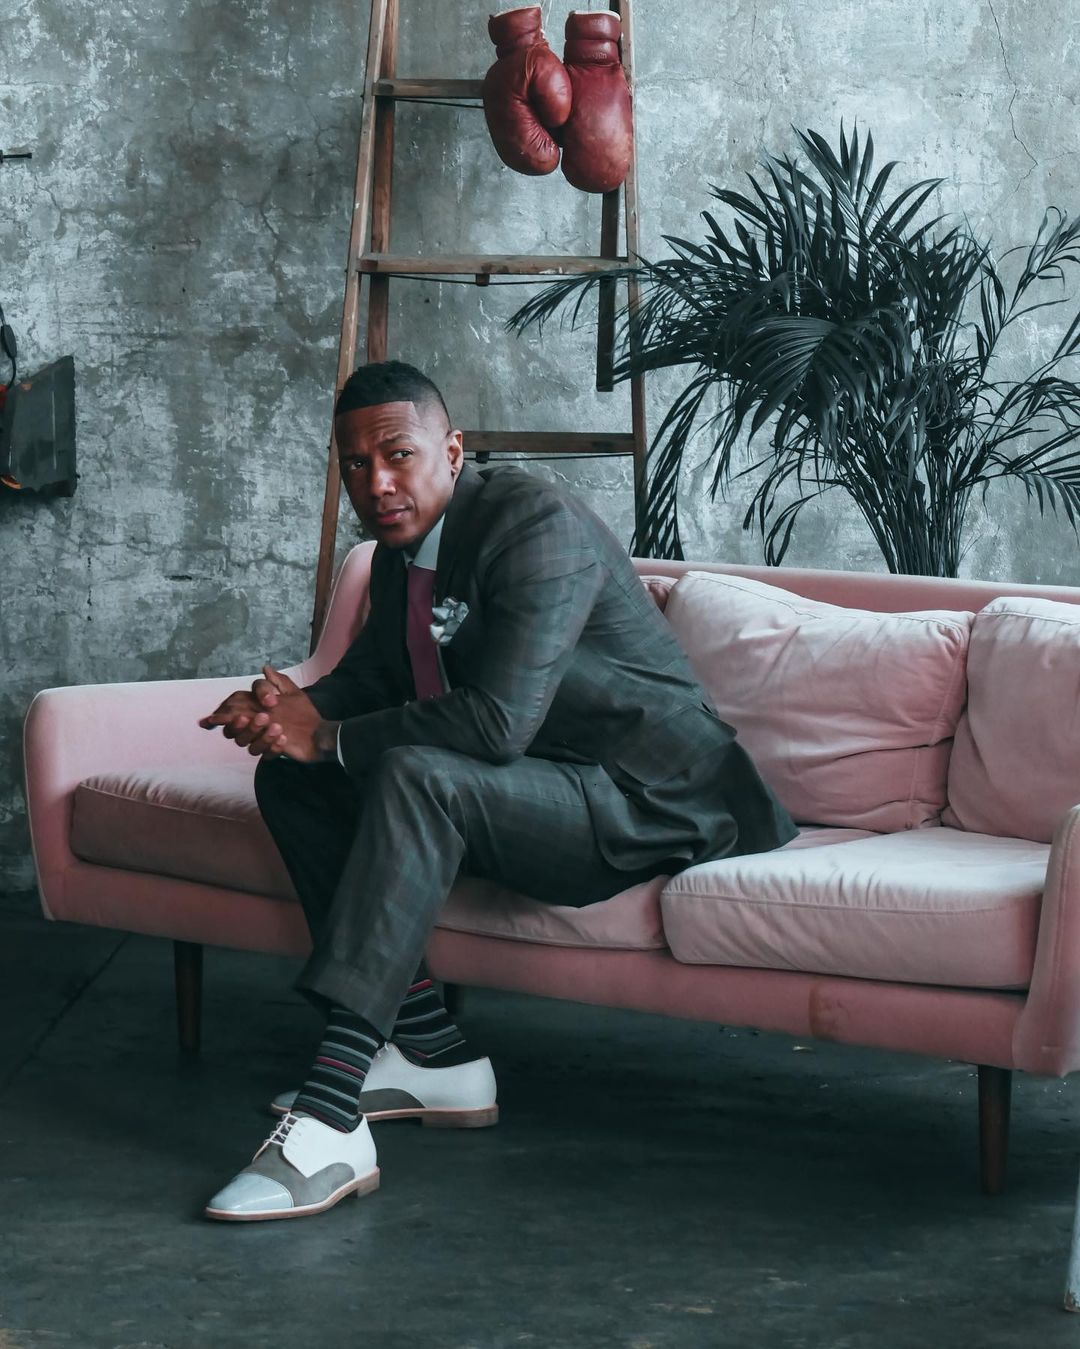 nick-cannon-wild-n-out-host-harrysong-married-andre-onana-banned-latest-news-global-world-stories-friday-february-2021-style-rave